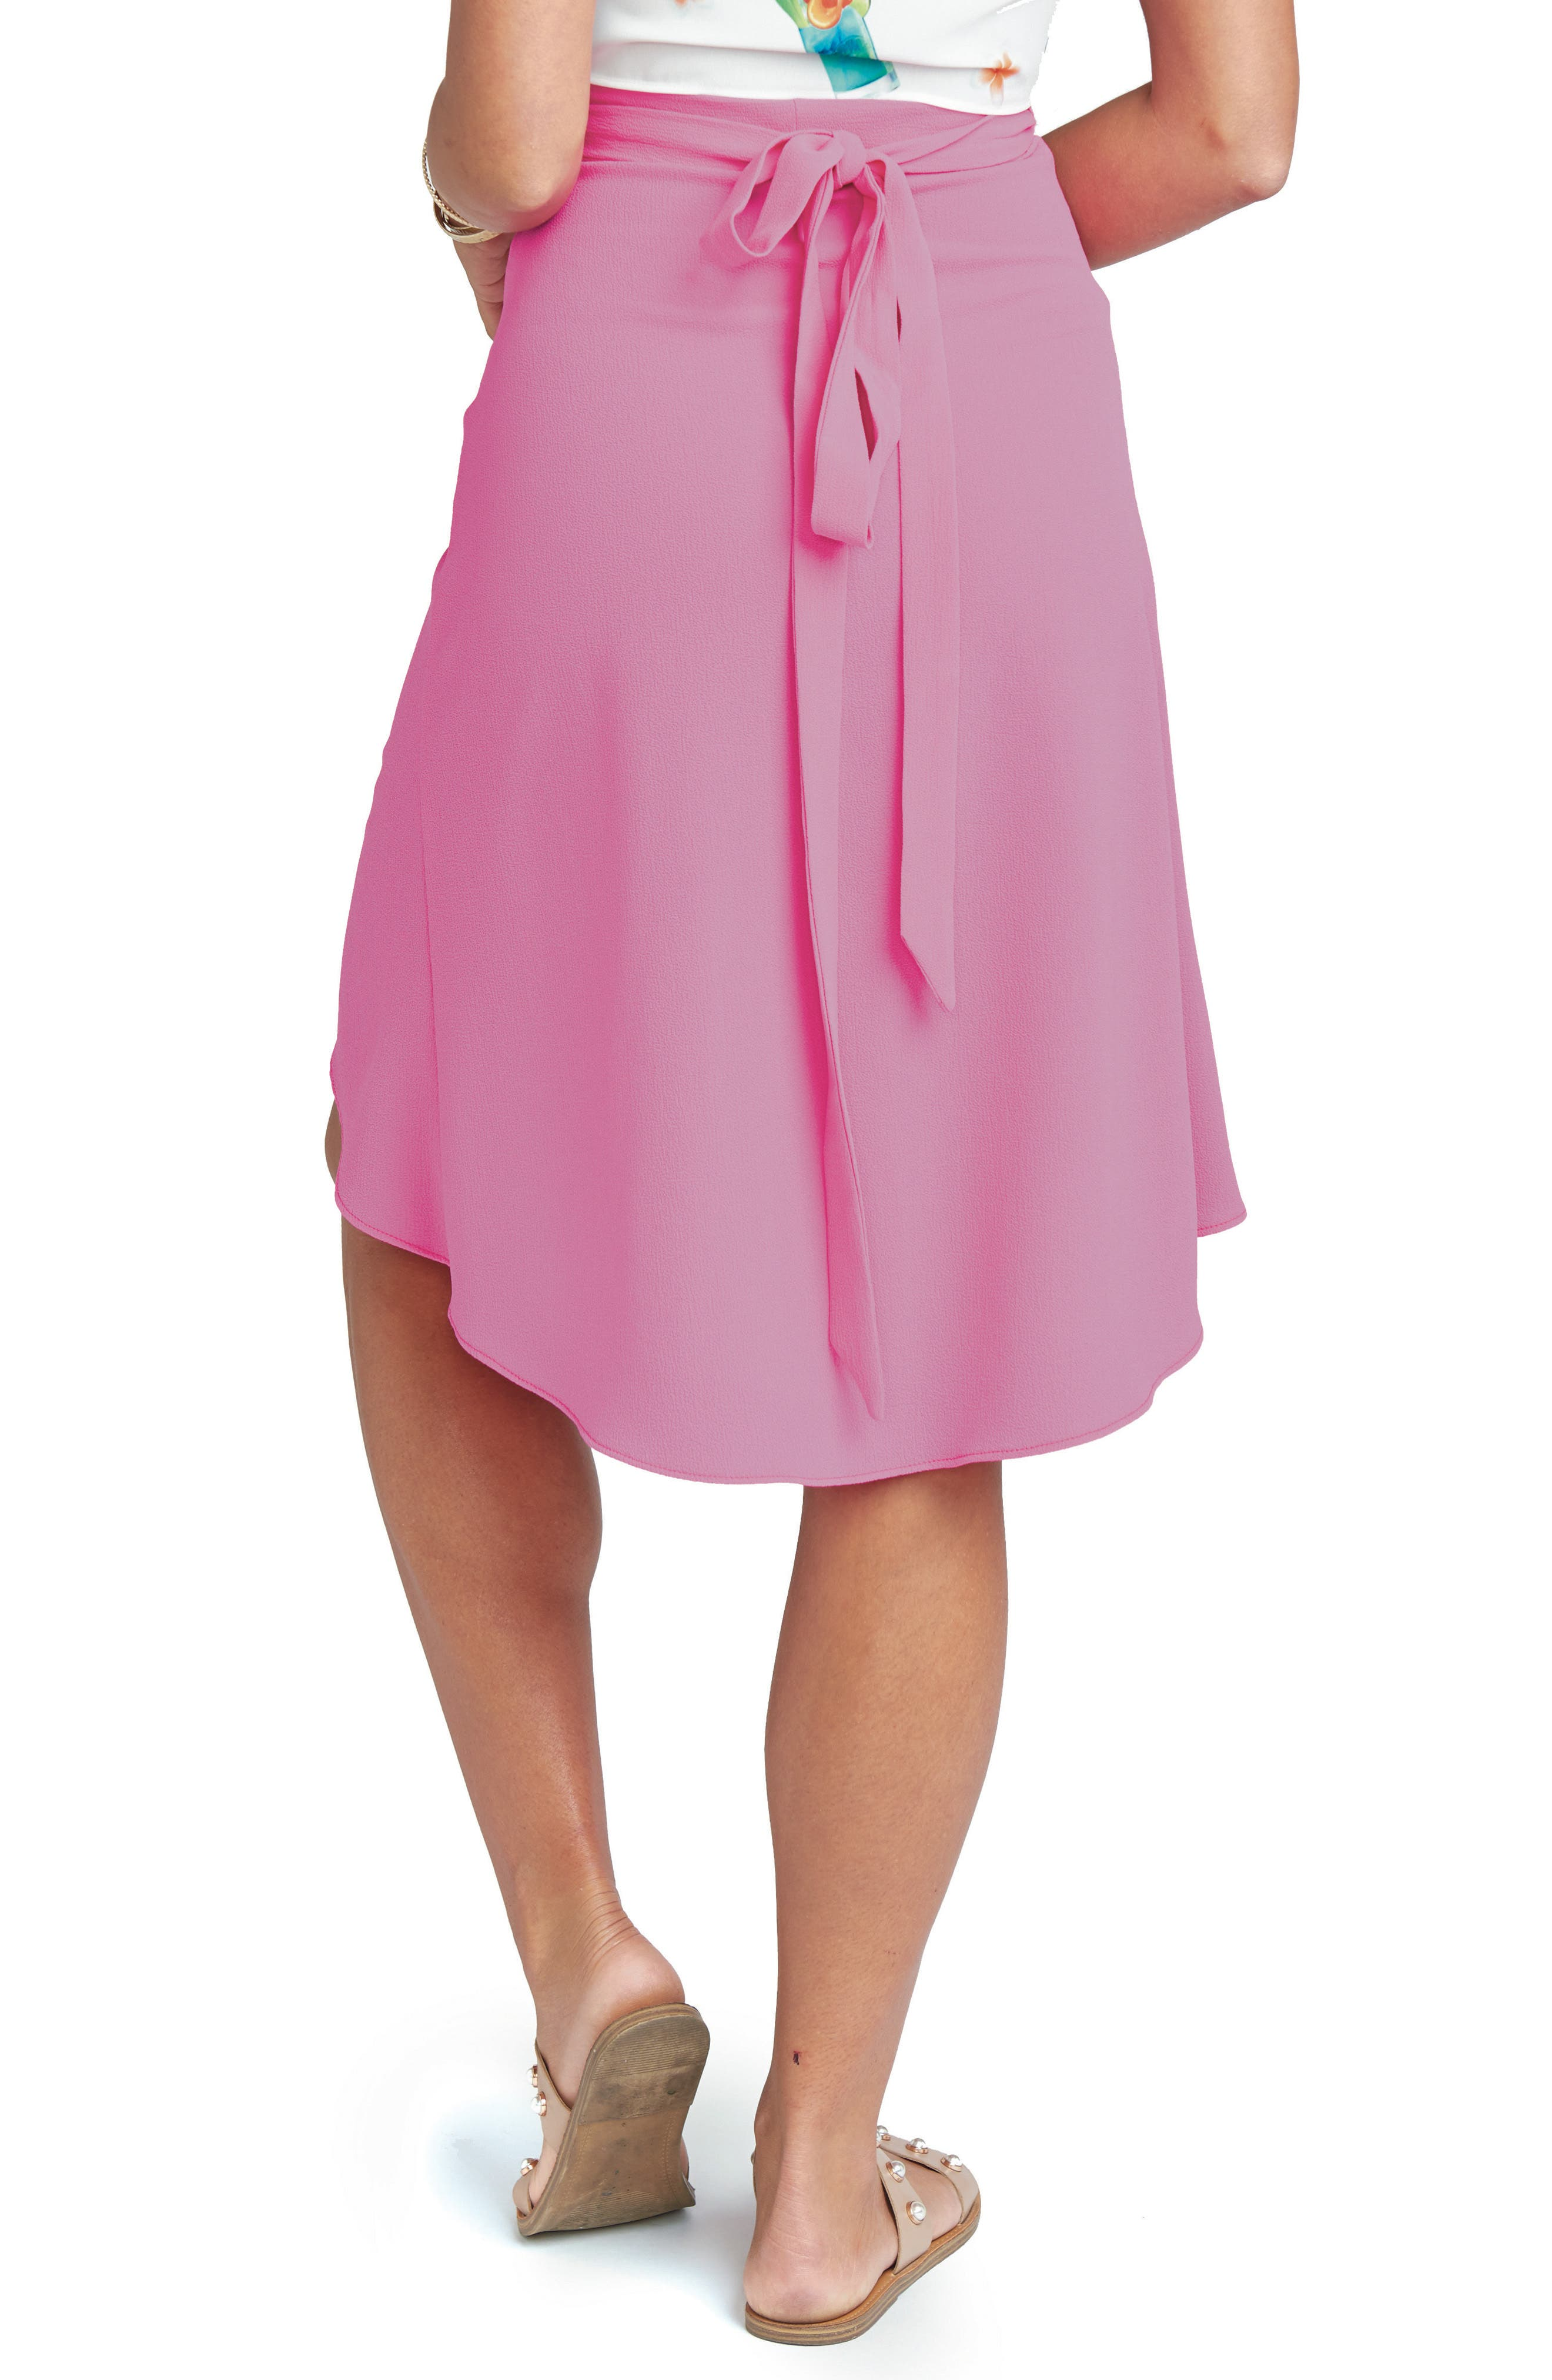 Panama Wrap Skirt,                             Alternate thumbnail 3, color,                             Hot Pink Crinkle Stretch